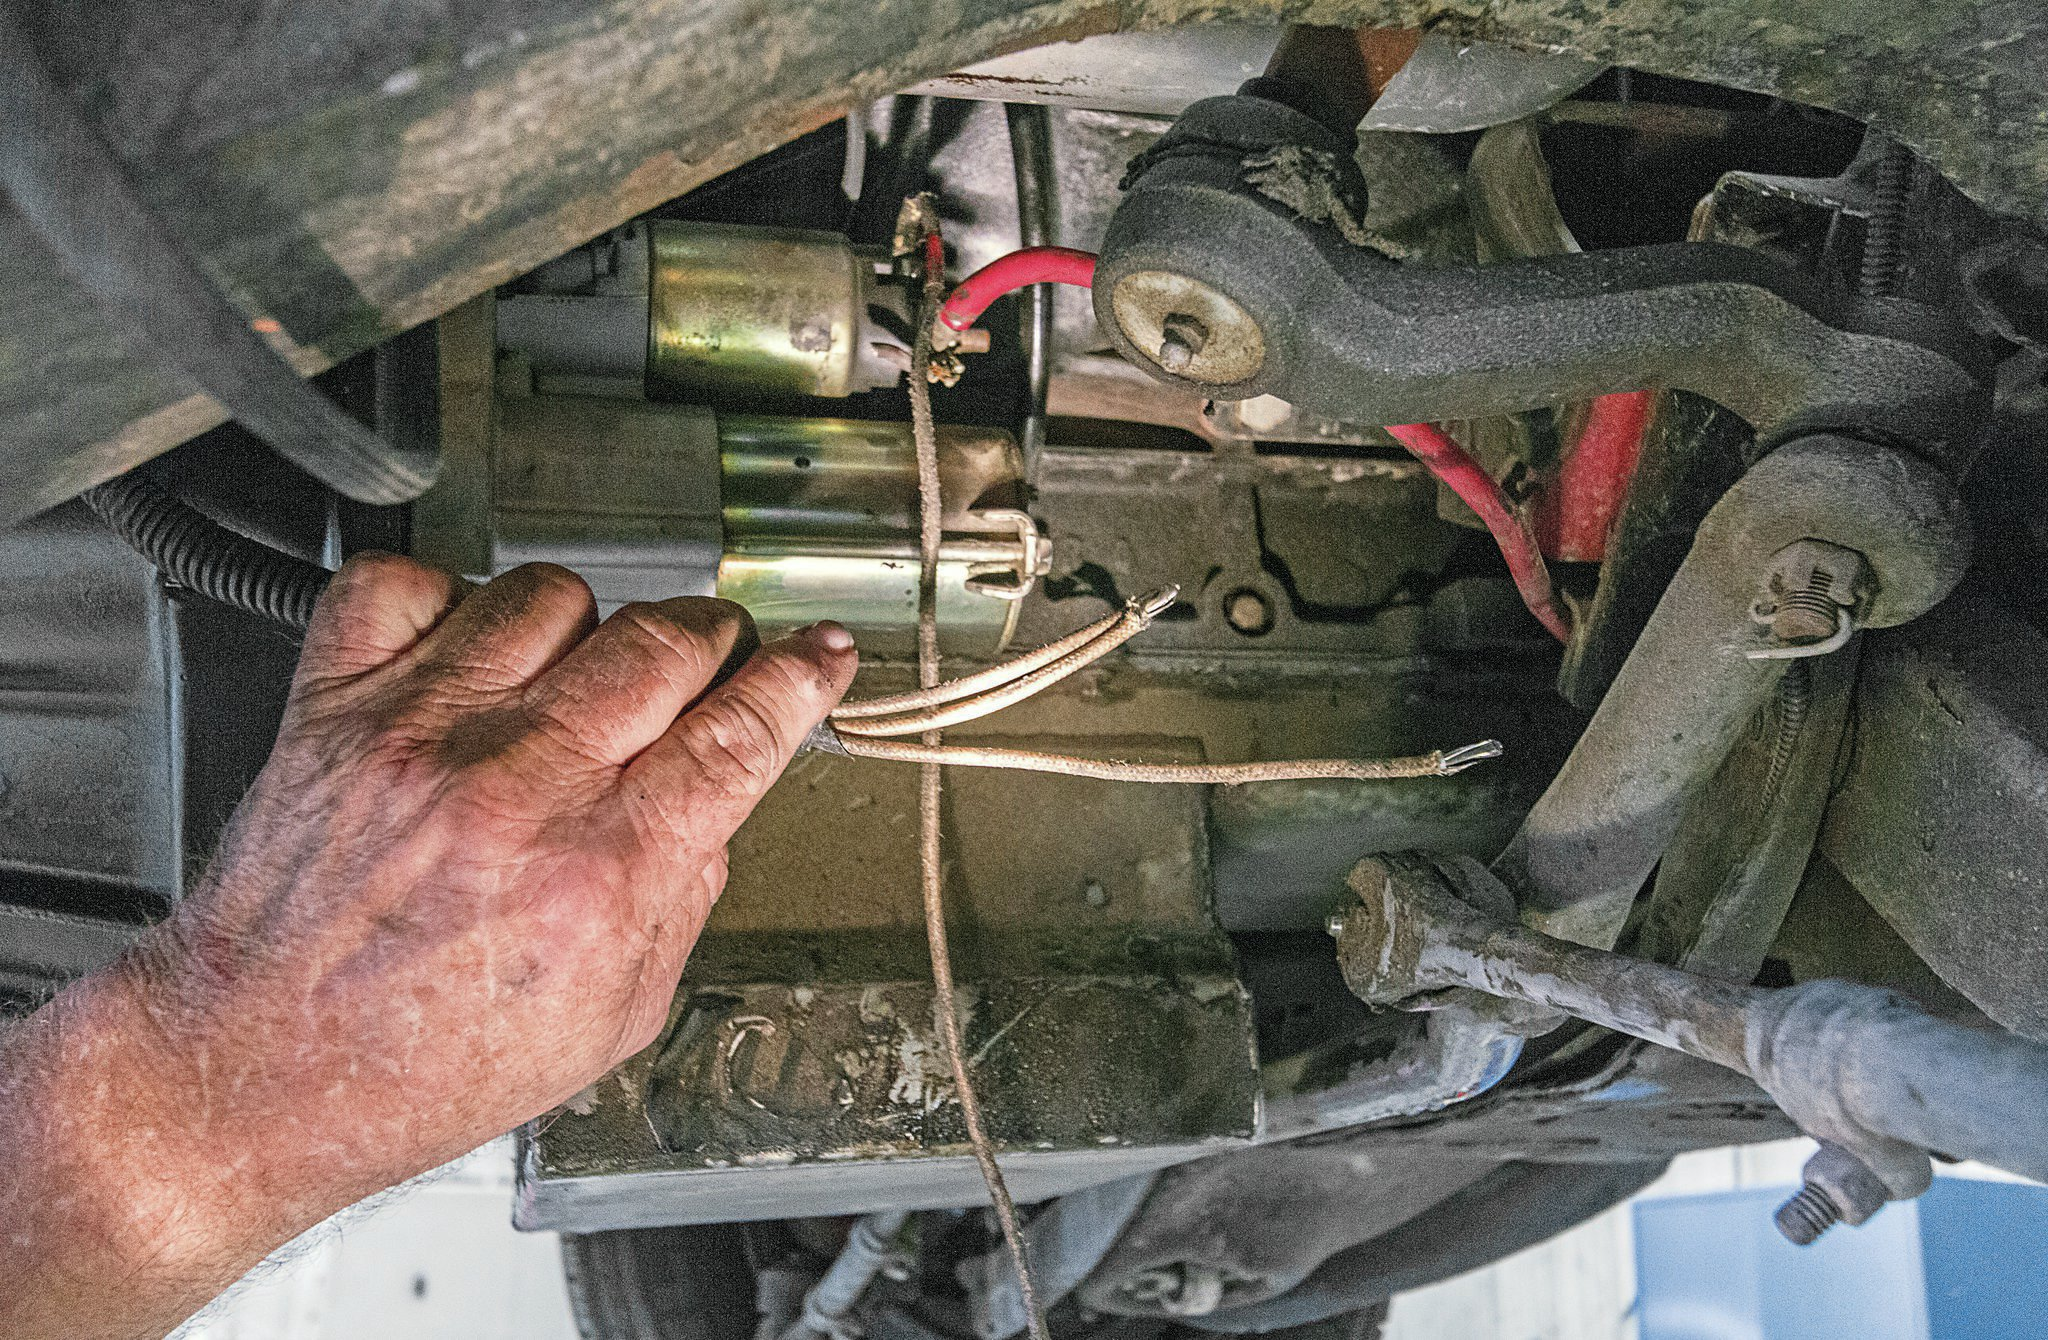 "While he was bending up the new fluid lines, Norm noticed the dangling engine starter wire harness. ""I couldn't just let that lie,"" remarked the meticulous mechanic. ""I cut 1 foot out of the wires, cleaned up the routing, and secured everything out of the way."""